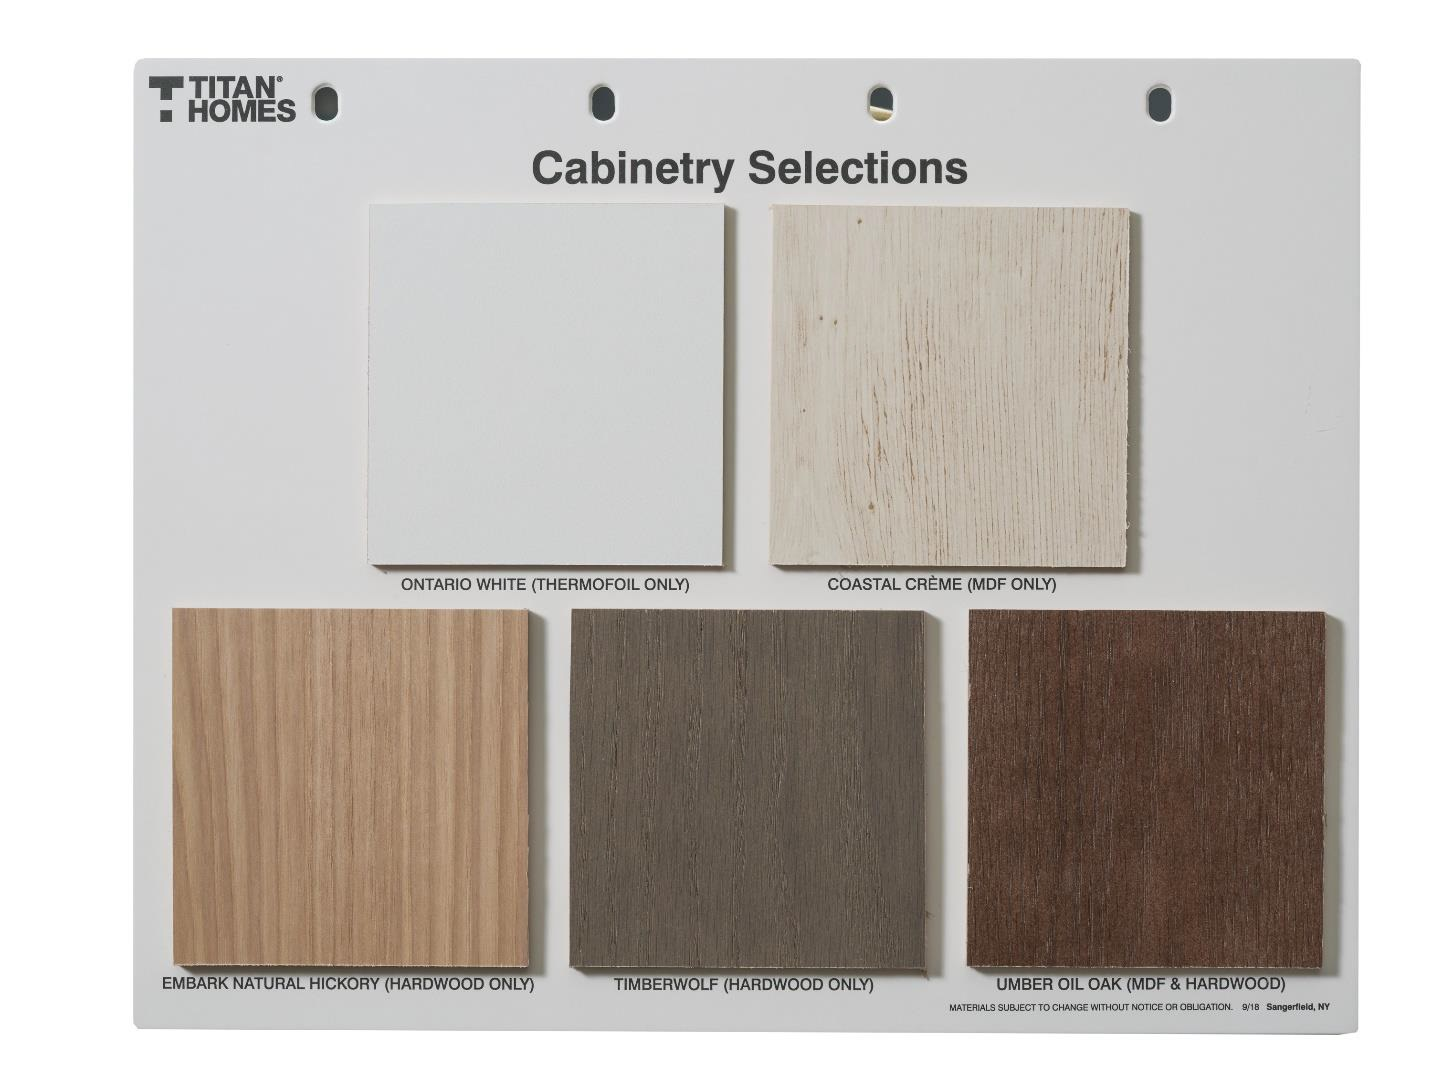 Cabinetry Selections